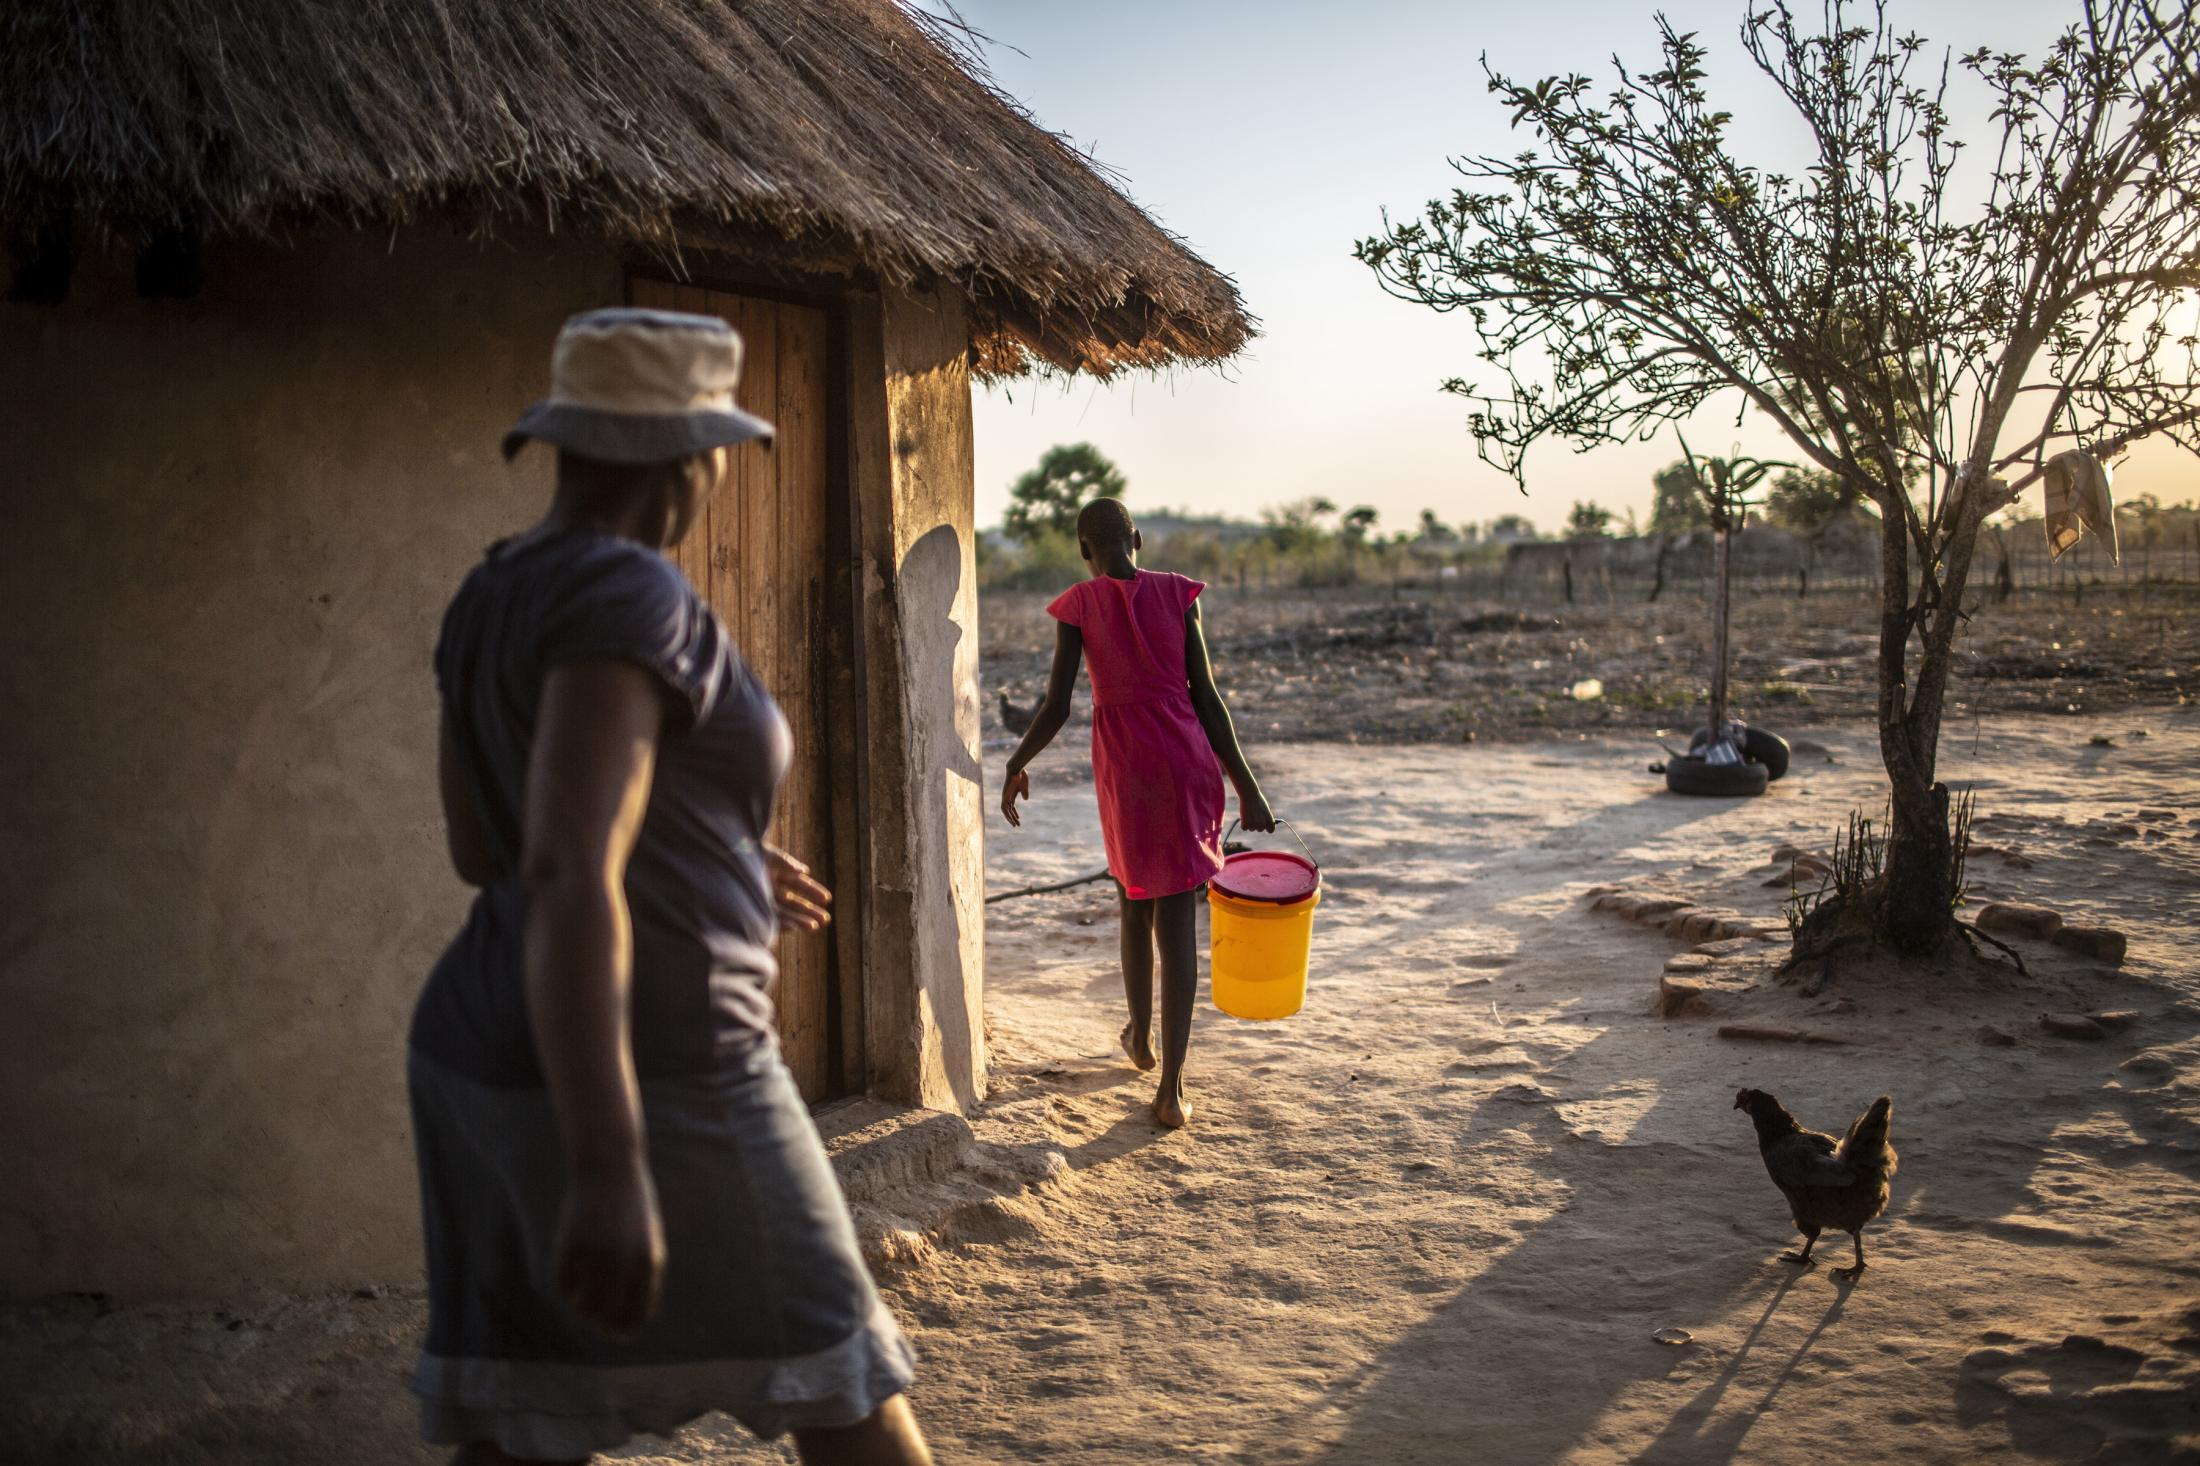 Tariro Chinamo (43) (L), pictured at her home which is 7kms away from the R4 Rural Resilience Project, prepares to go fetch water with her daughter Lana Fariva (14) in Masvingo, Zimbabwe on October 07, 2019. The family has no electricity or water at home and have to walk for over a km to a spring to fetch water everyday. They have no choice but to use this for drinking and cooking as well, so it will be boiled.